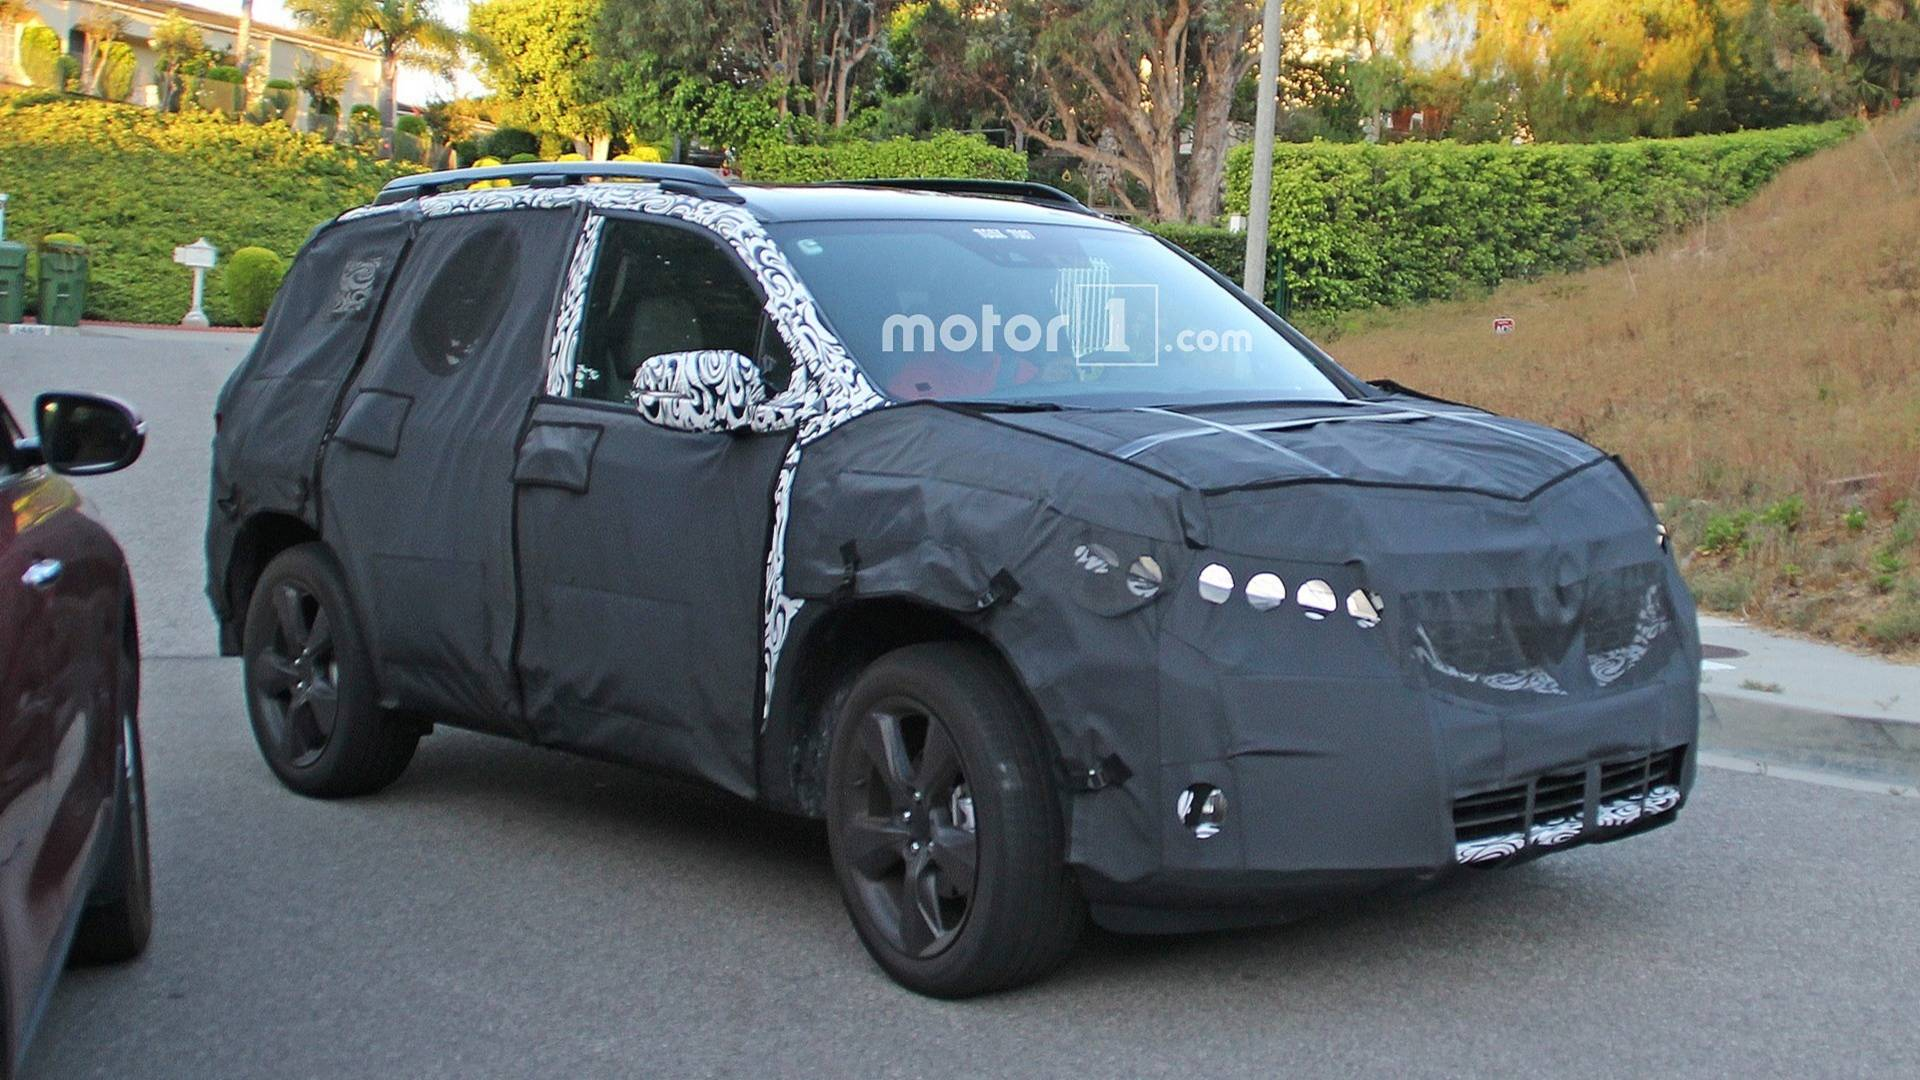 New Honda Suv >> First Look New Honda Passport Suv Spied Inside And Out